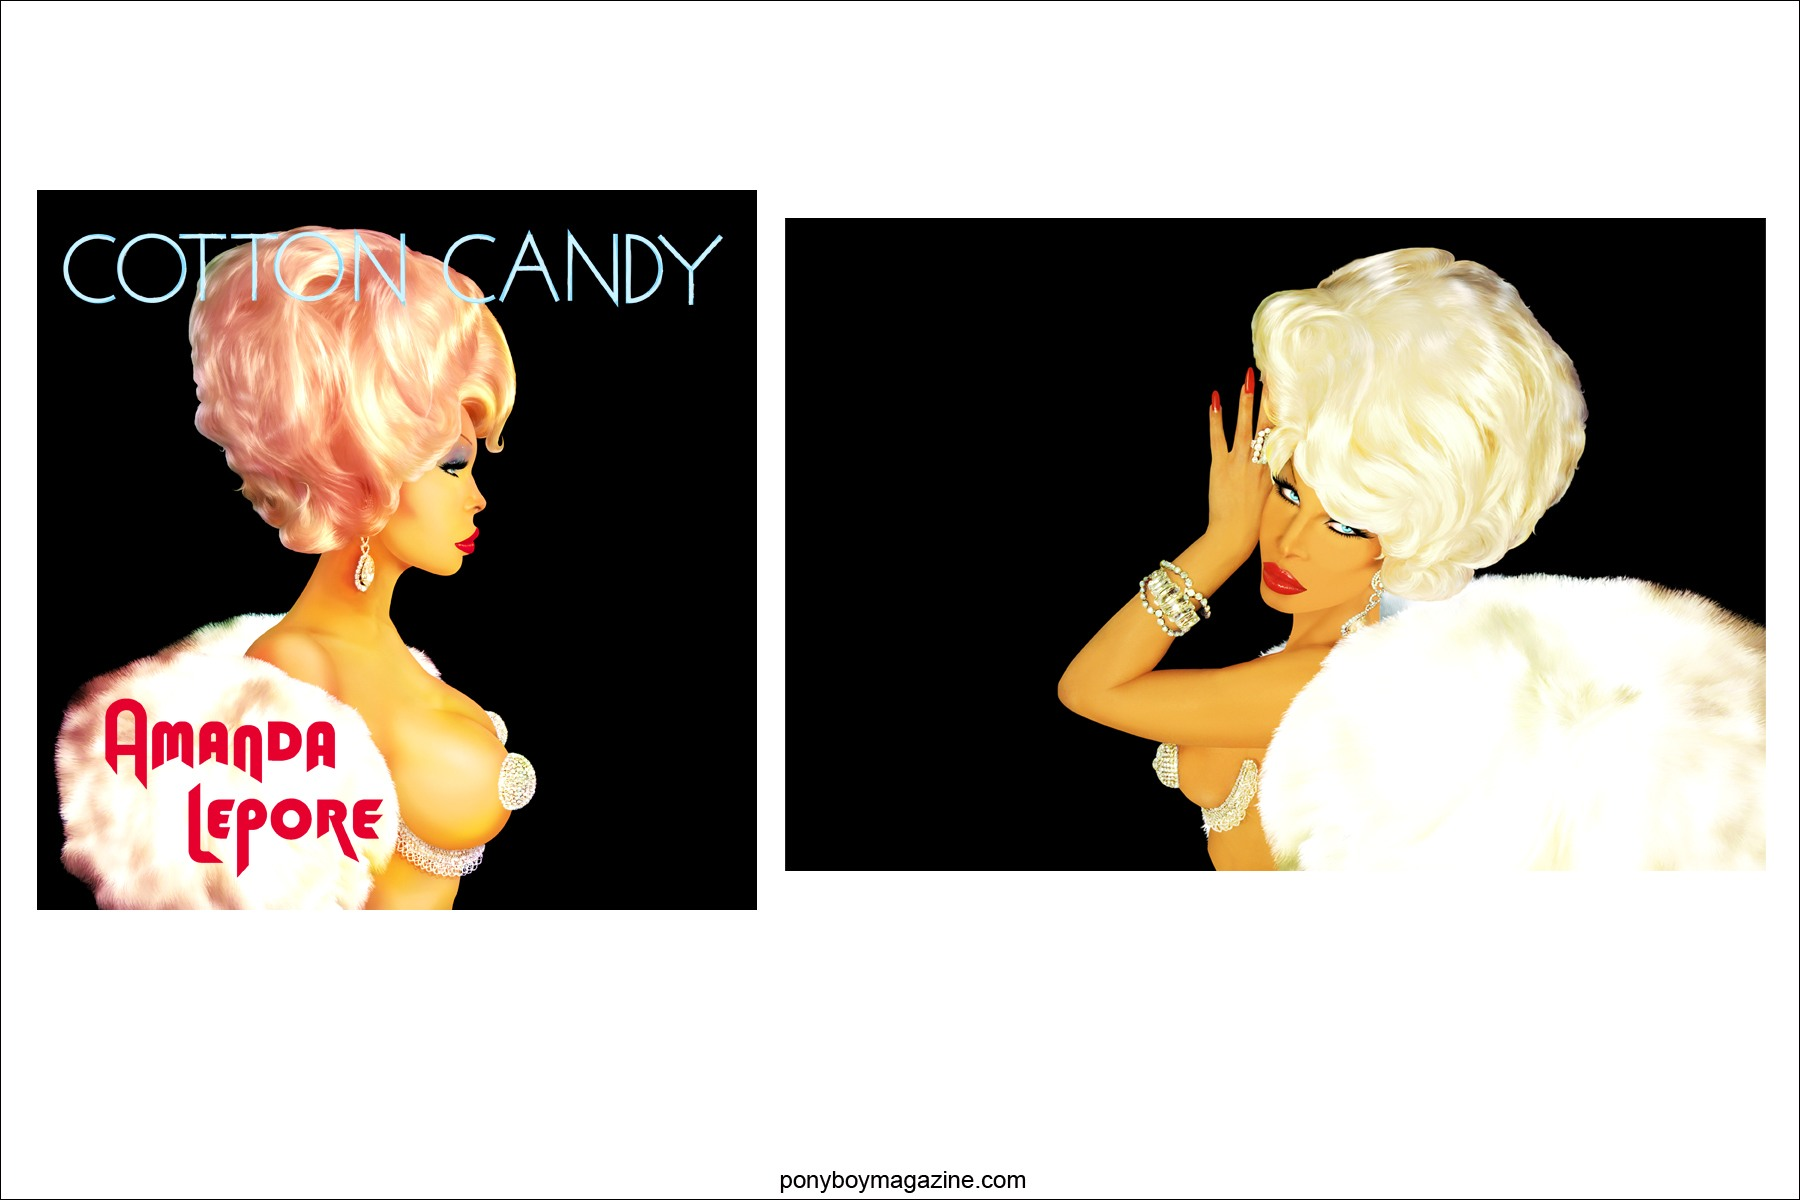 Amanda Lepore images by NYC digital artist and dj Scott Ewalt, Ponyboy Magazine.